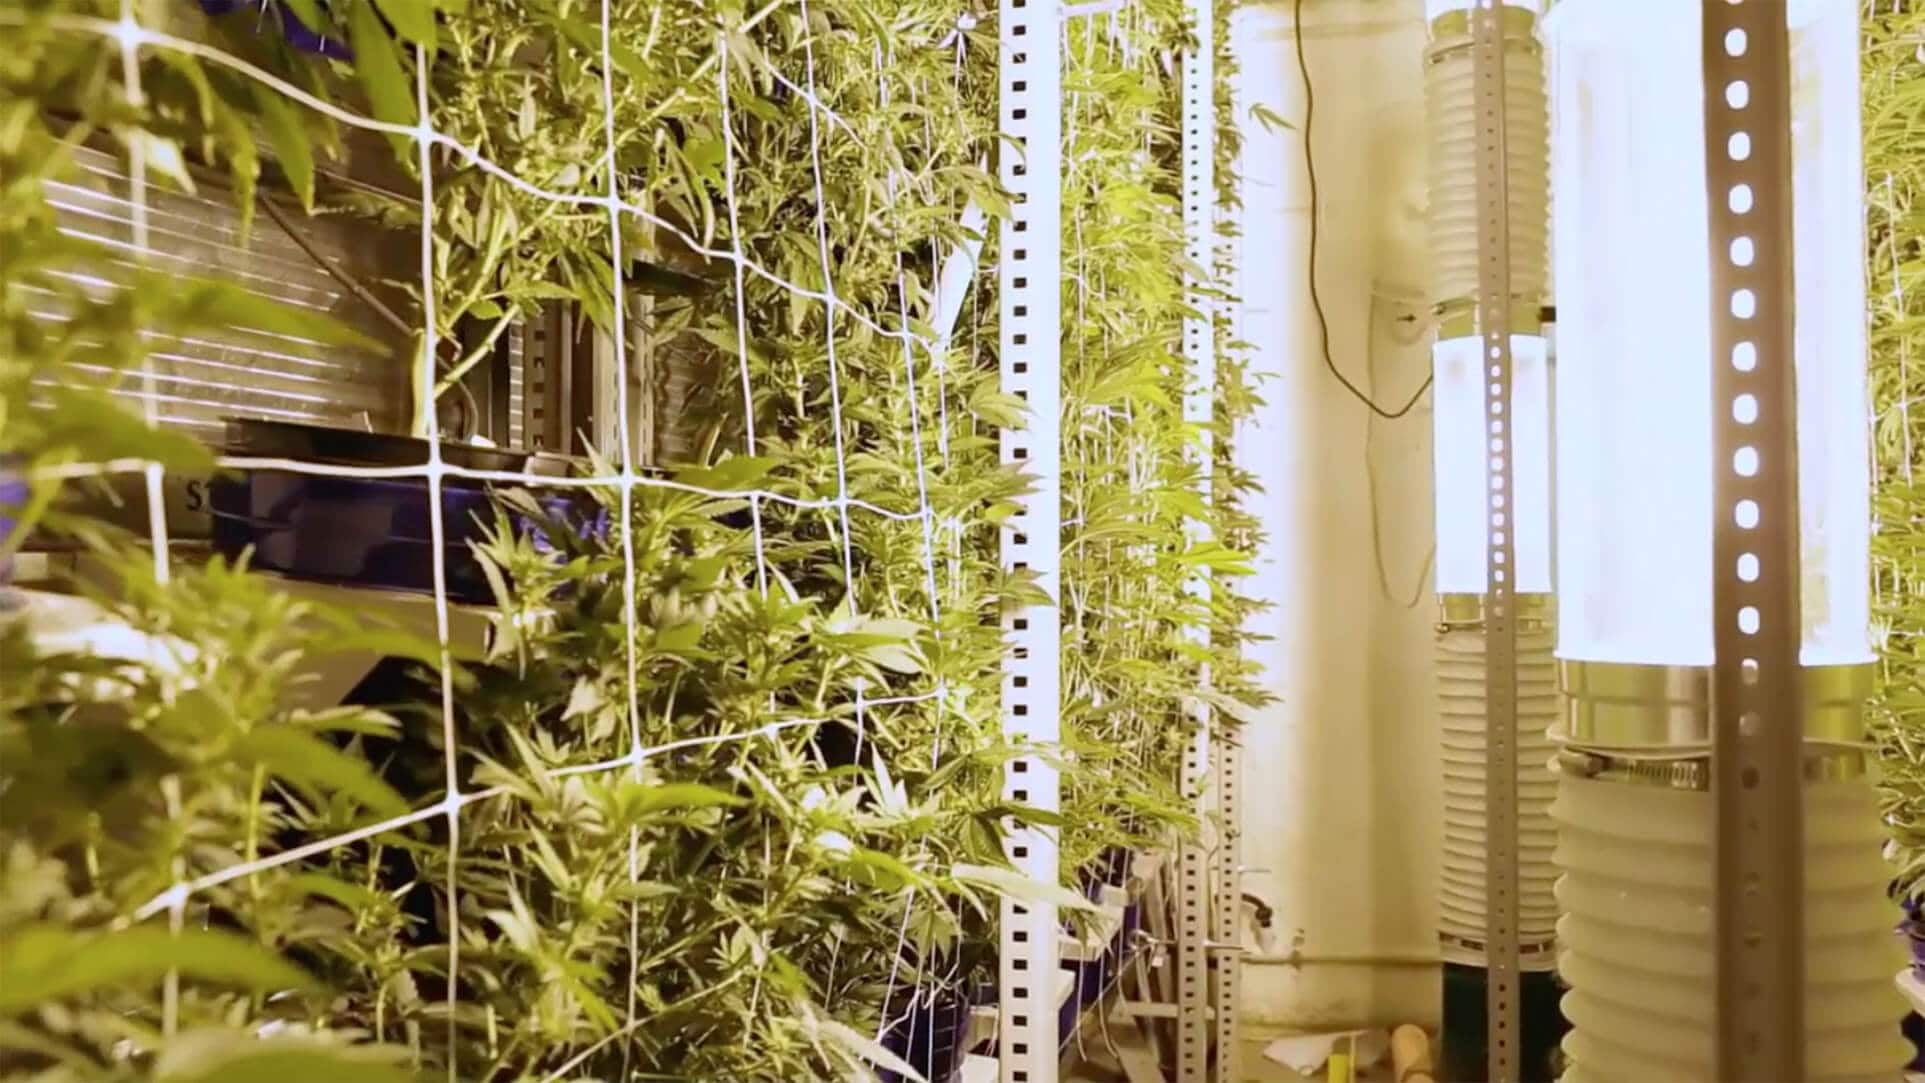 Marijuana Grow Space